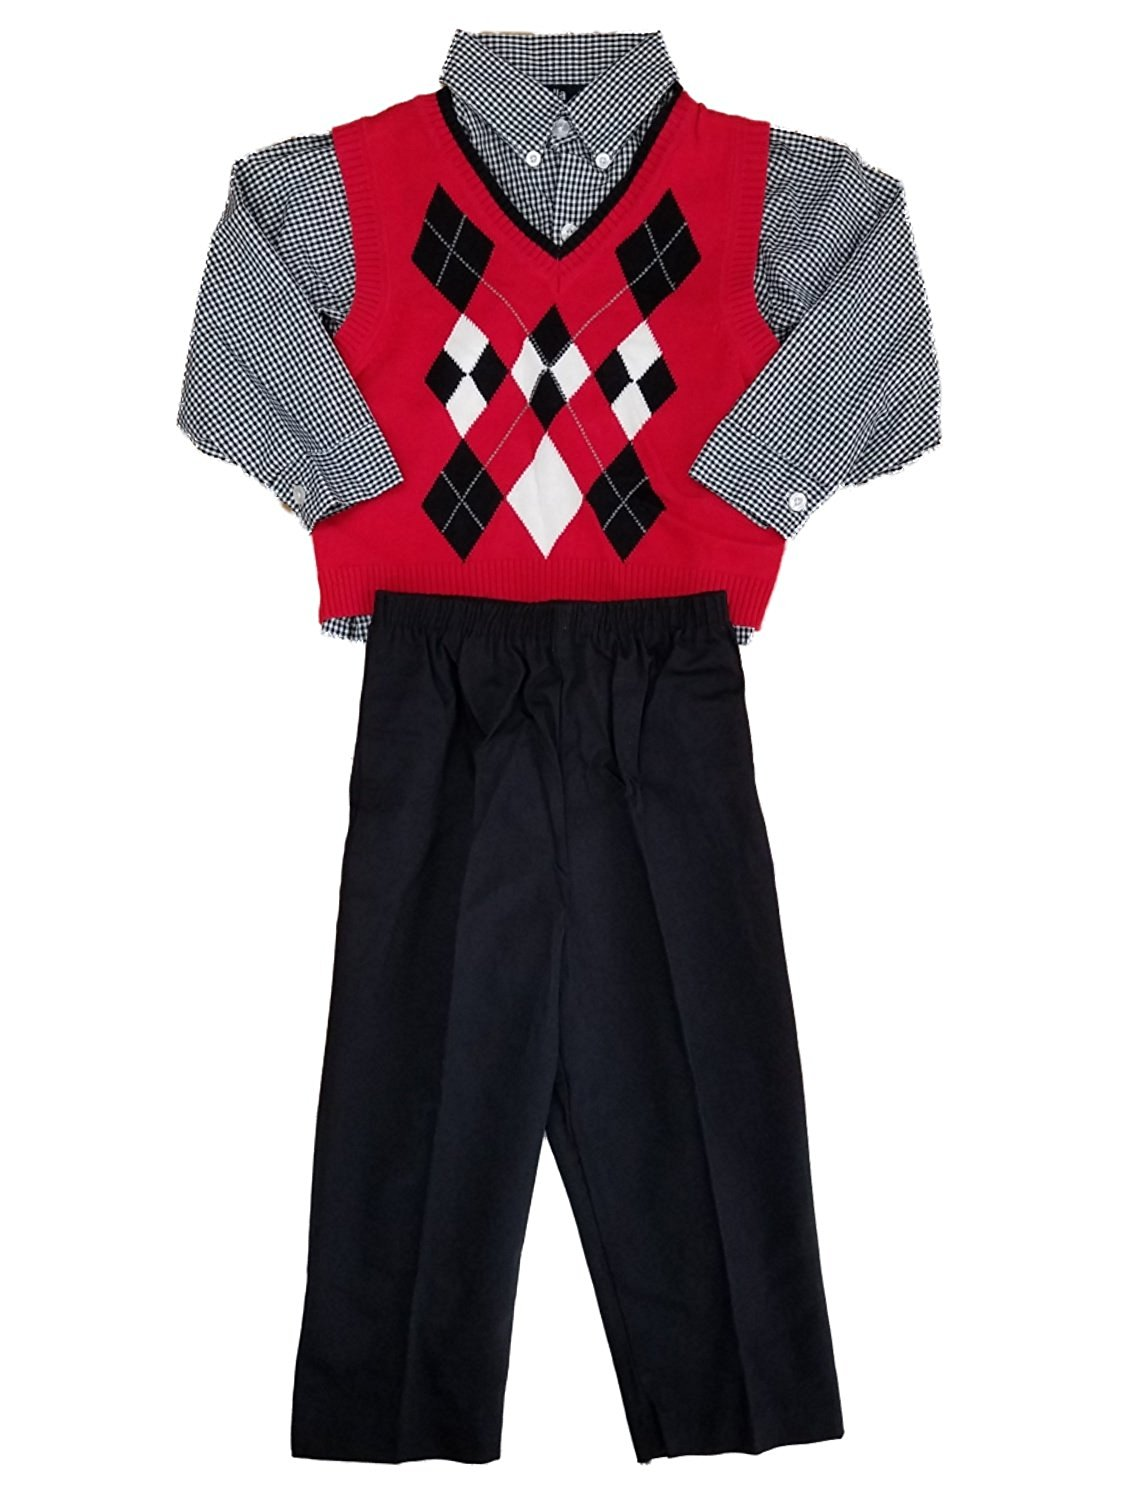 954e7c75a Get Quotations · Happy Fella Toddler Boys 3pc Red Black & White Argyle Sweater  Vest Plaid Shirt & Pant